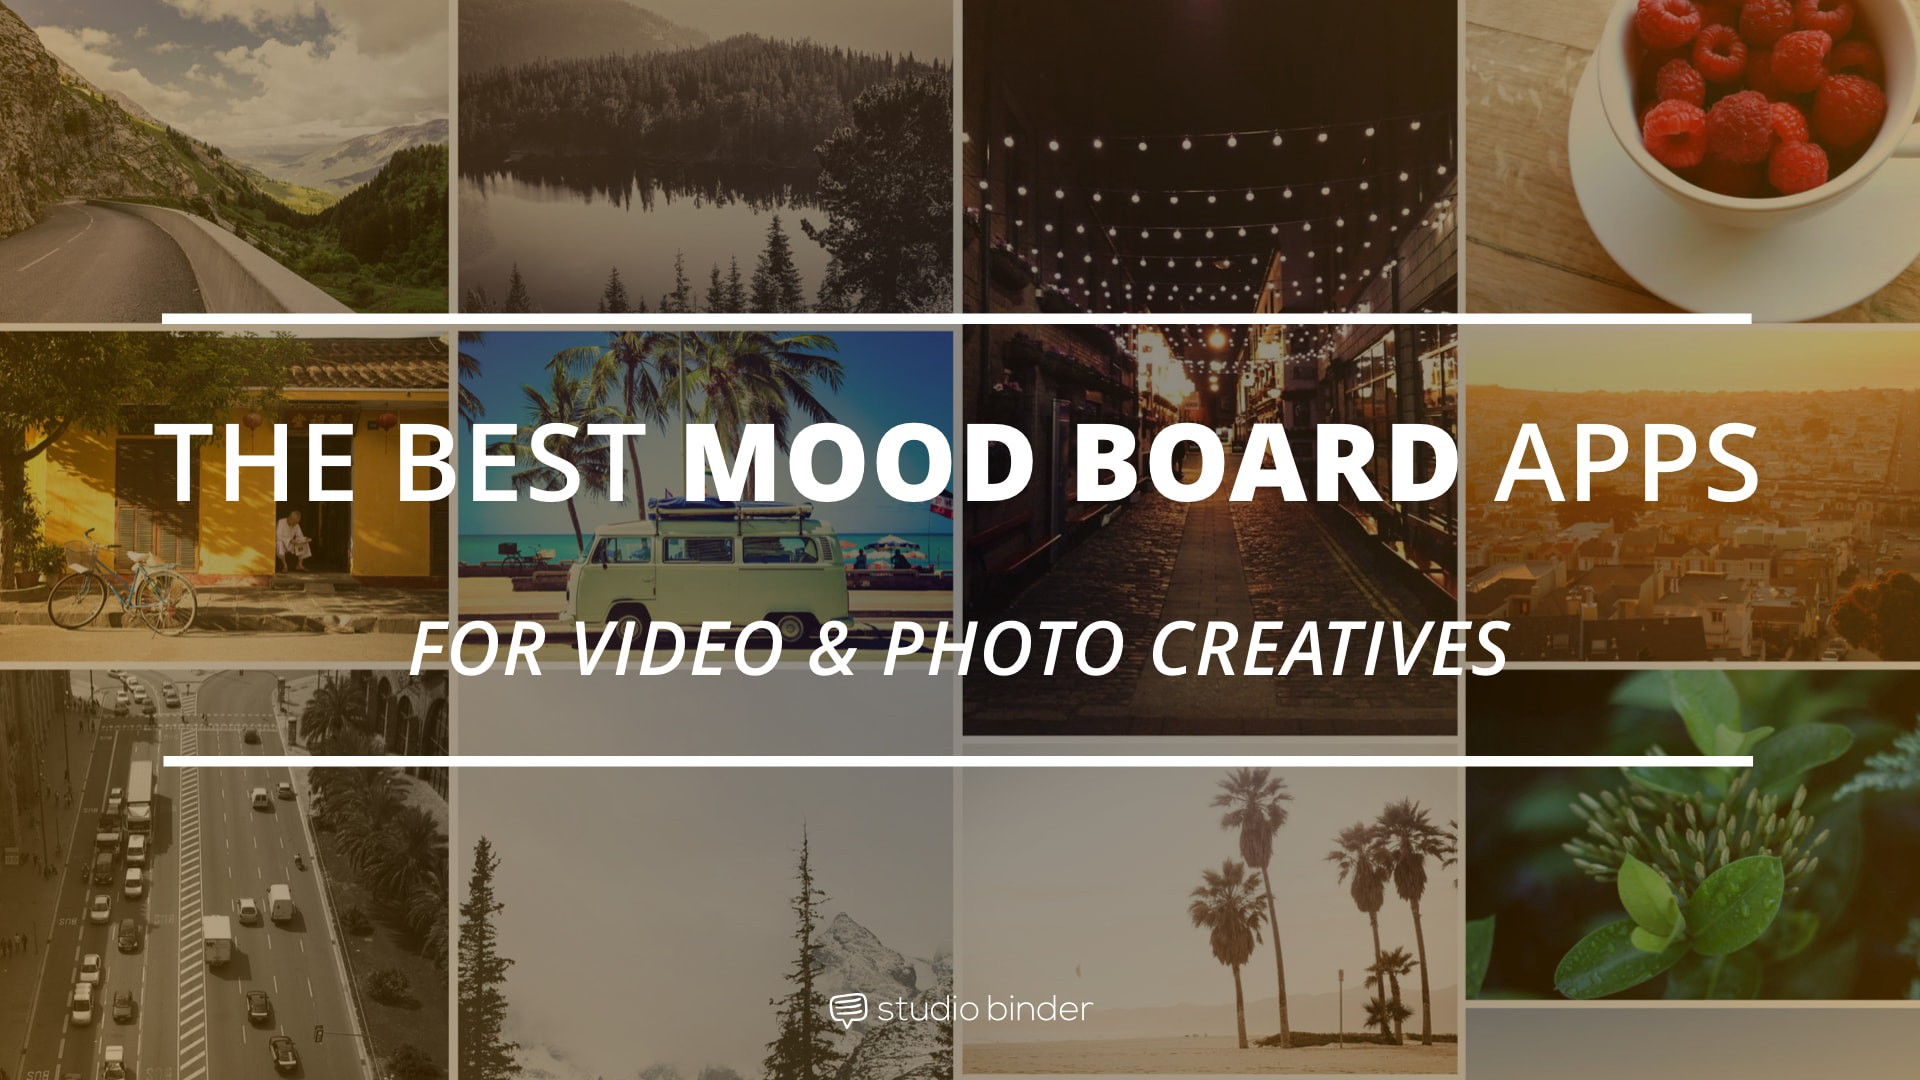 Top 14 Mood Board Apps Of 2017 For Video Production With FREE Template